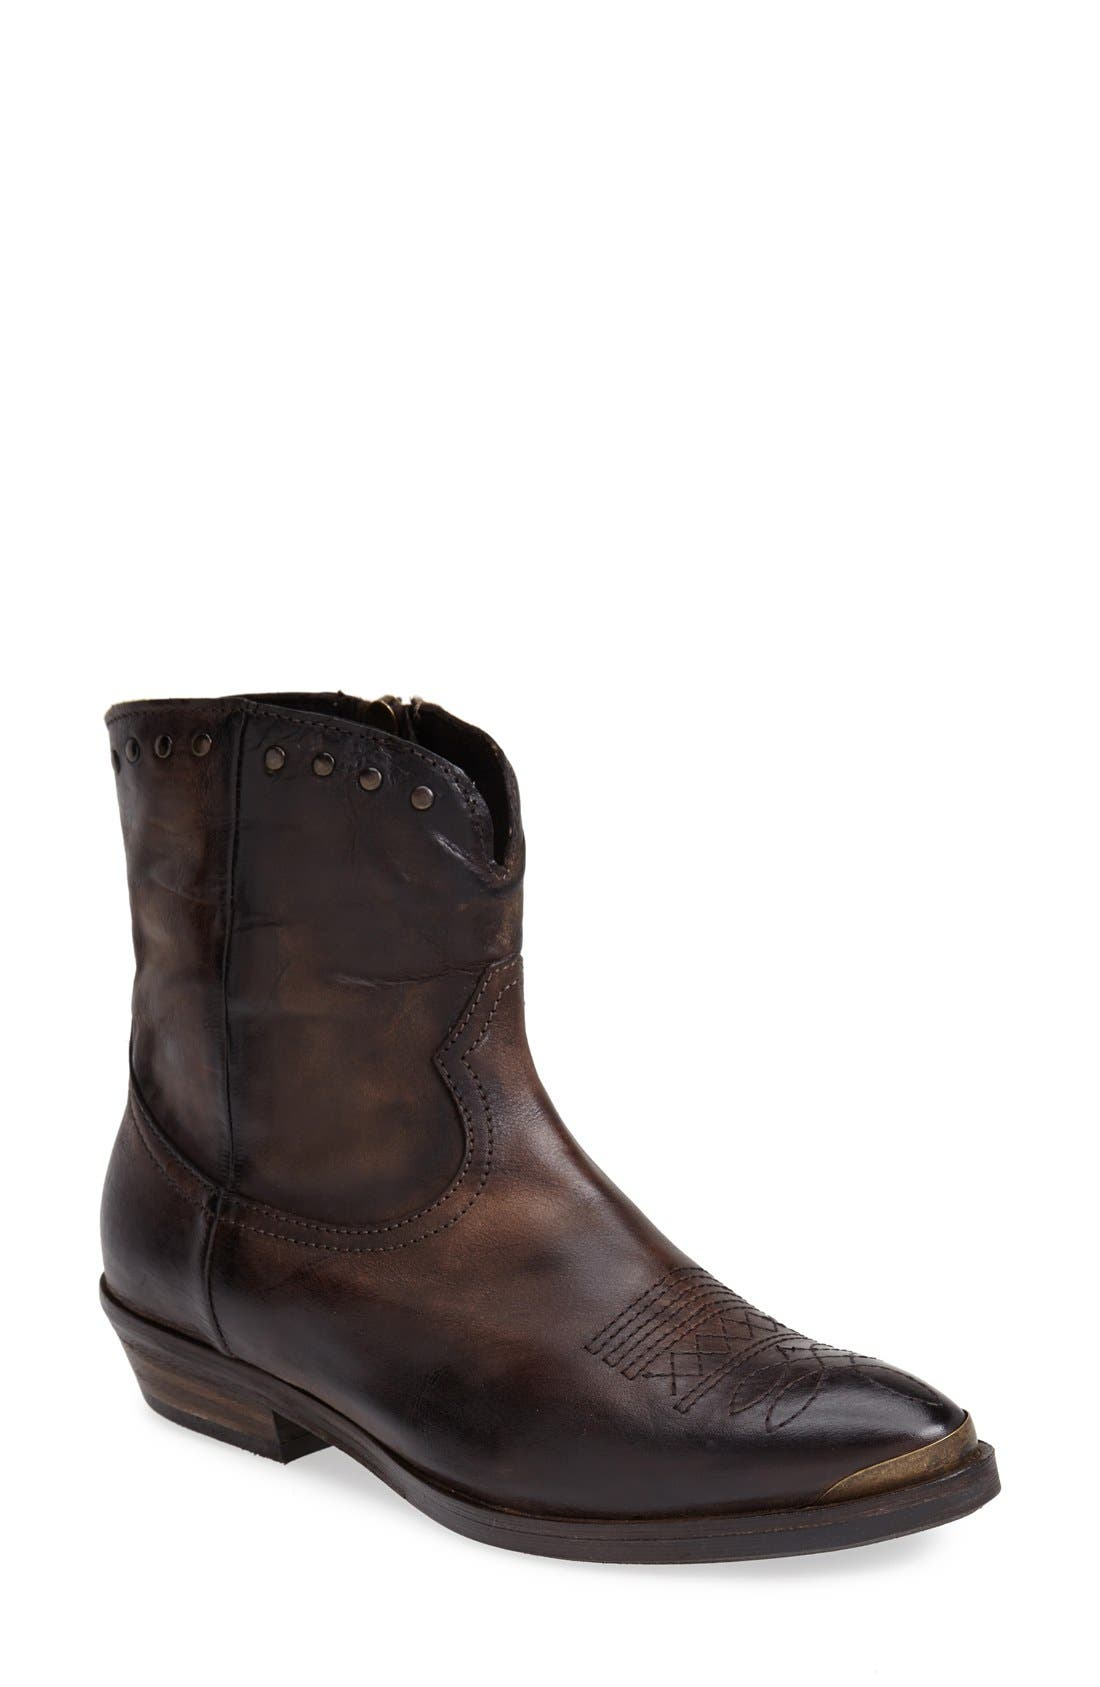 Alternate Image 1 Selected - KBR Low Shaft Leather Boot (Women)